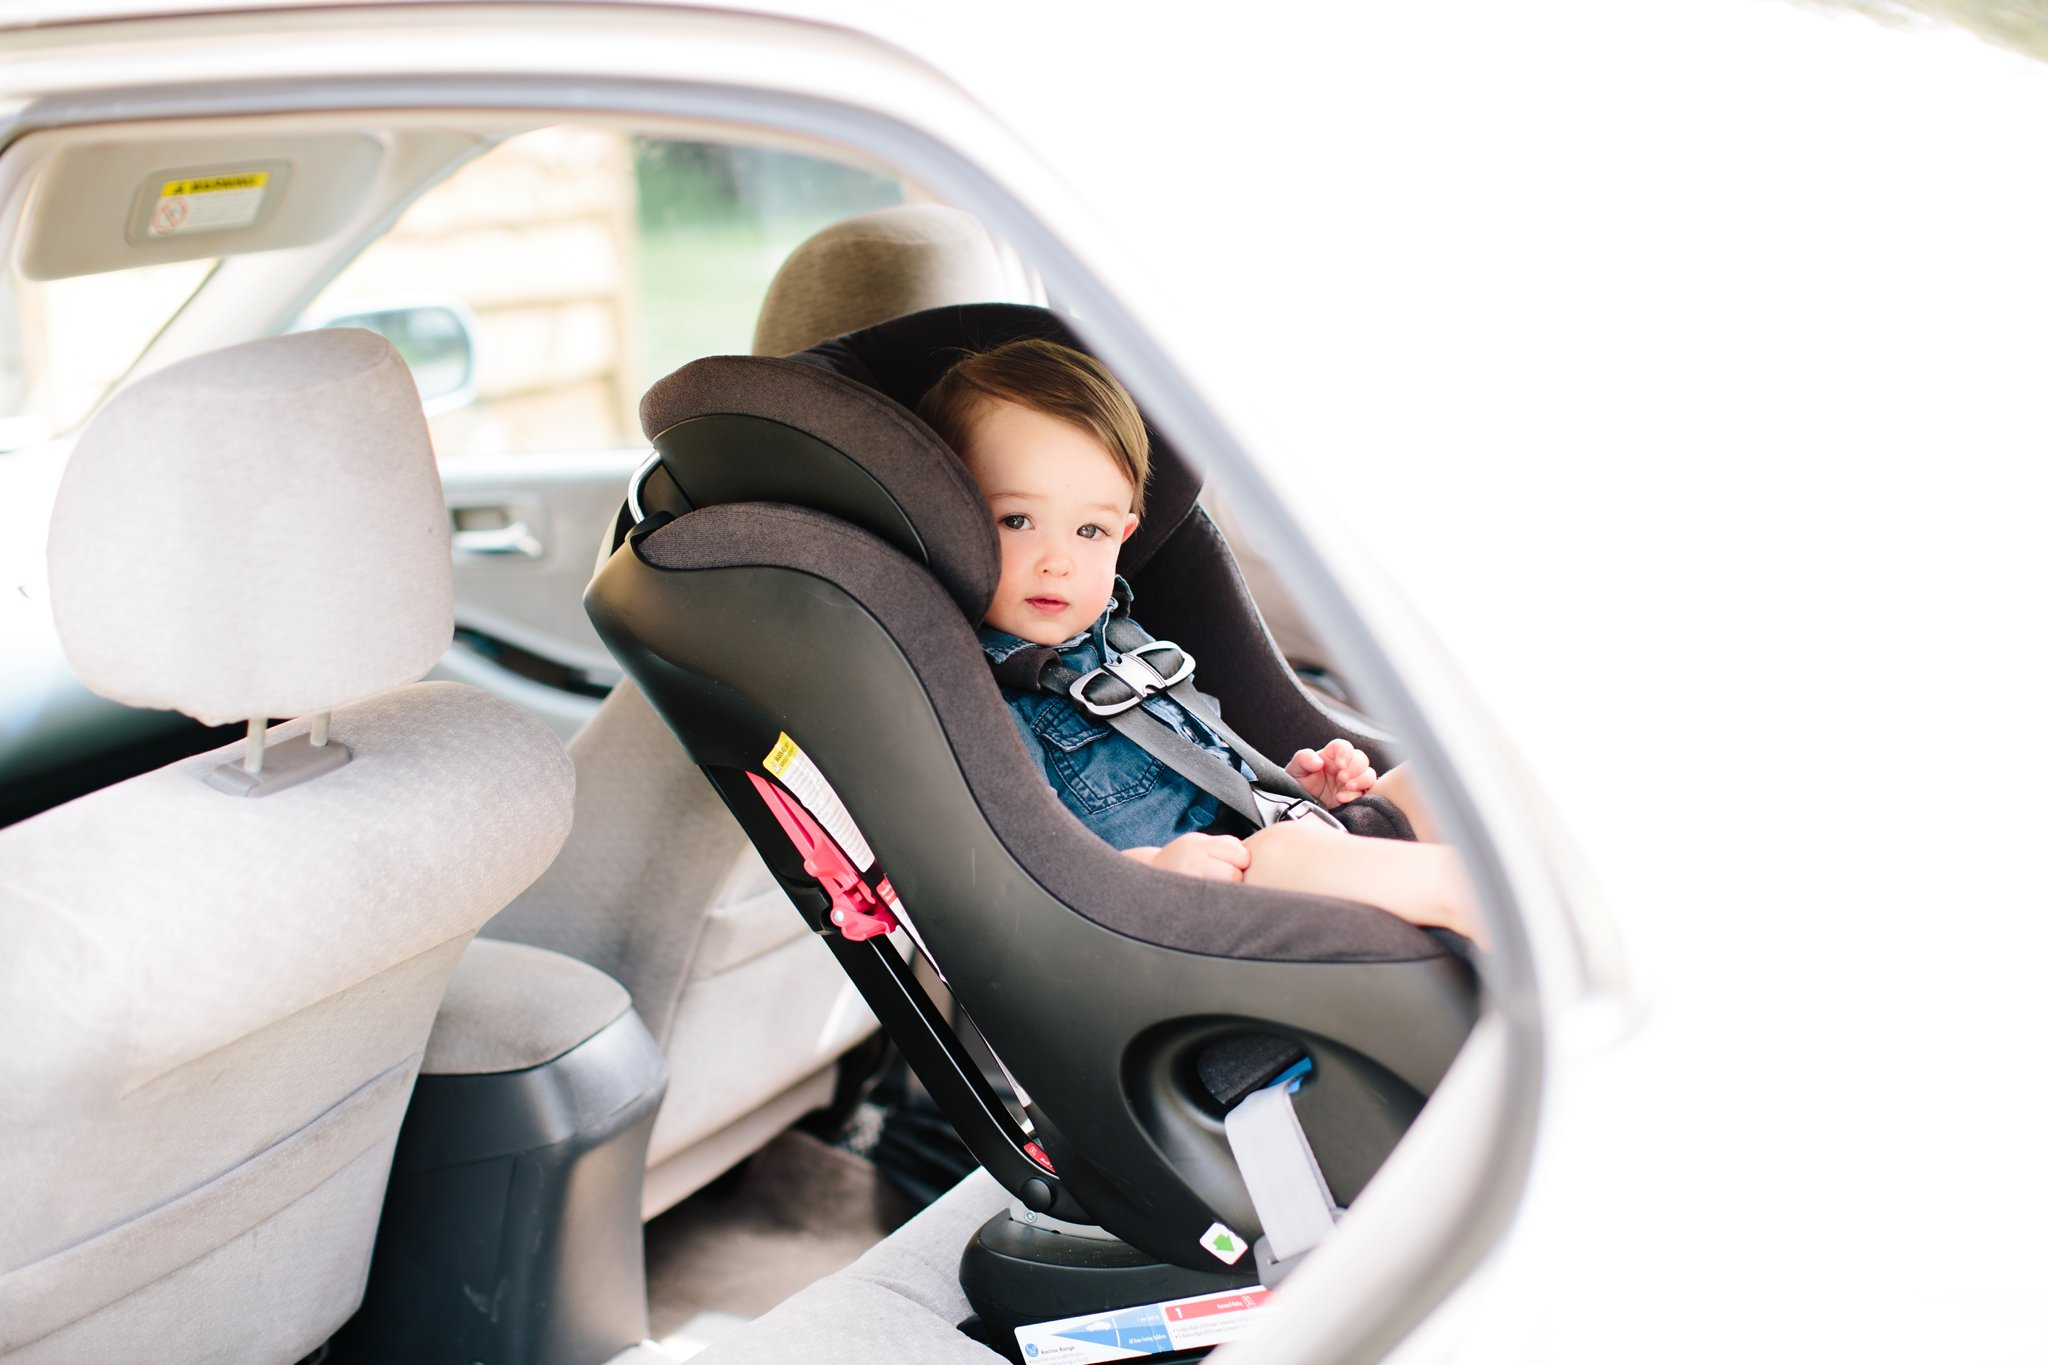 Rear Facing Car Seat Pennsylvania Non Toxic Tuesday Turning Your Child 39;s Car Seat Forward